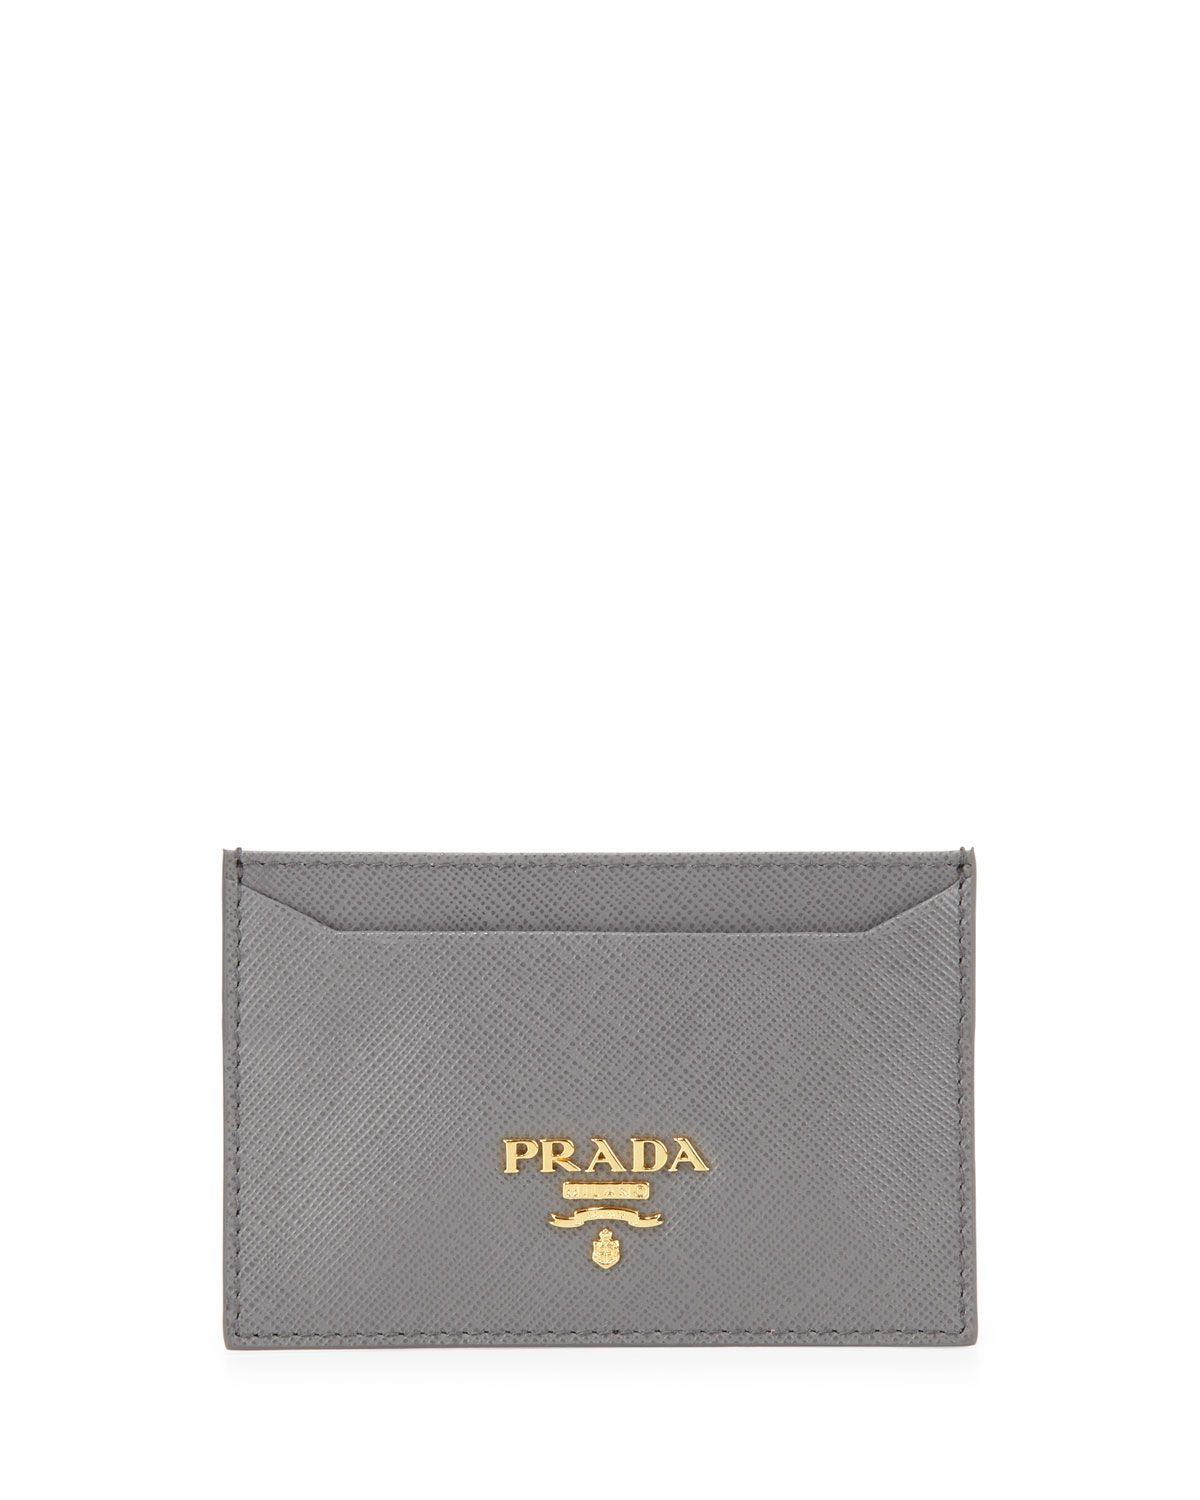 Prada Saffiano Card Holder, Gray (Marmo), Grey | *Handbags ...